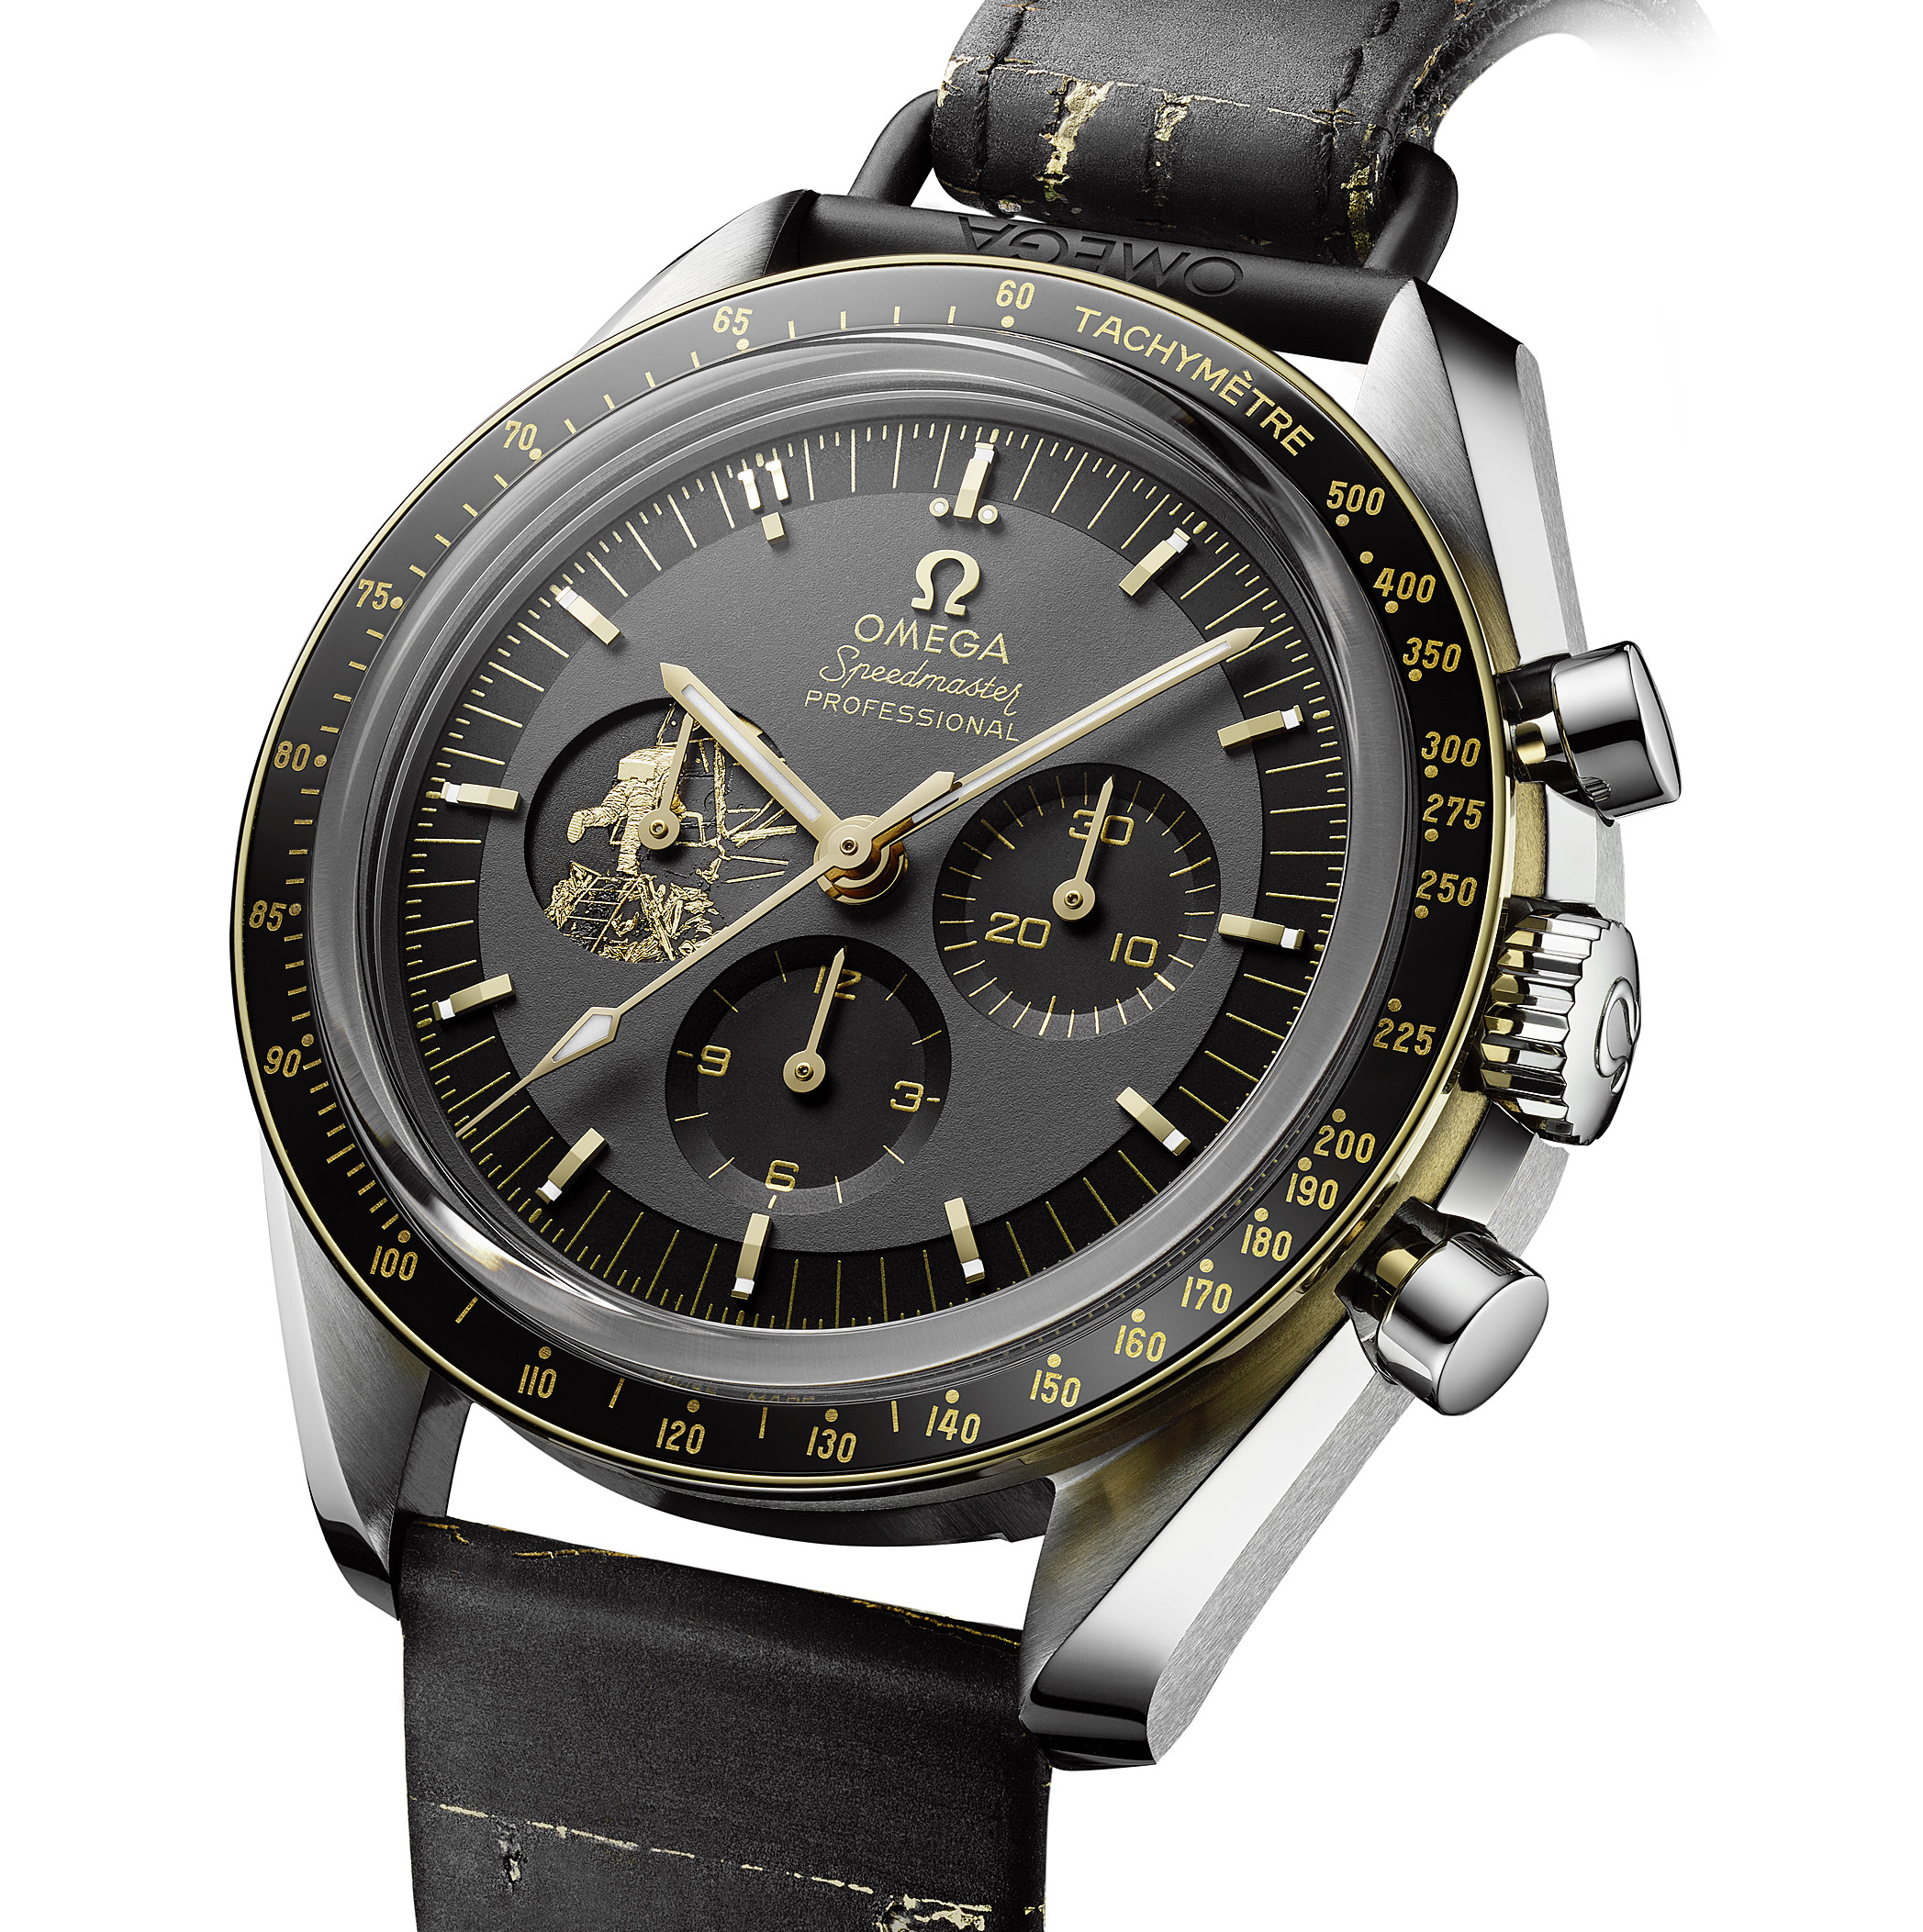 Swatch Group 2019 Release: The Omega Speedmaster Apollo 11 50th Anniversary Limited Edition in Stainless Steel